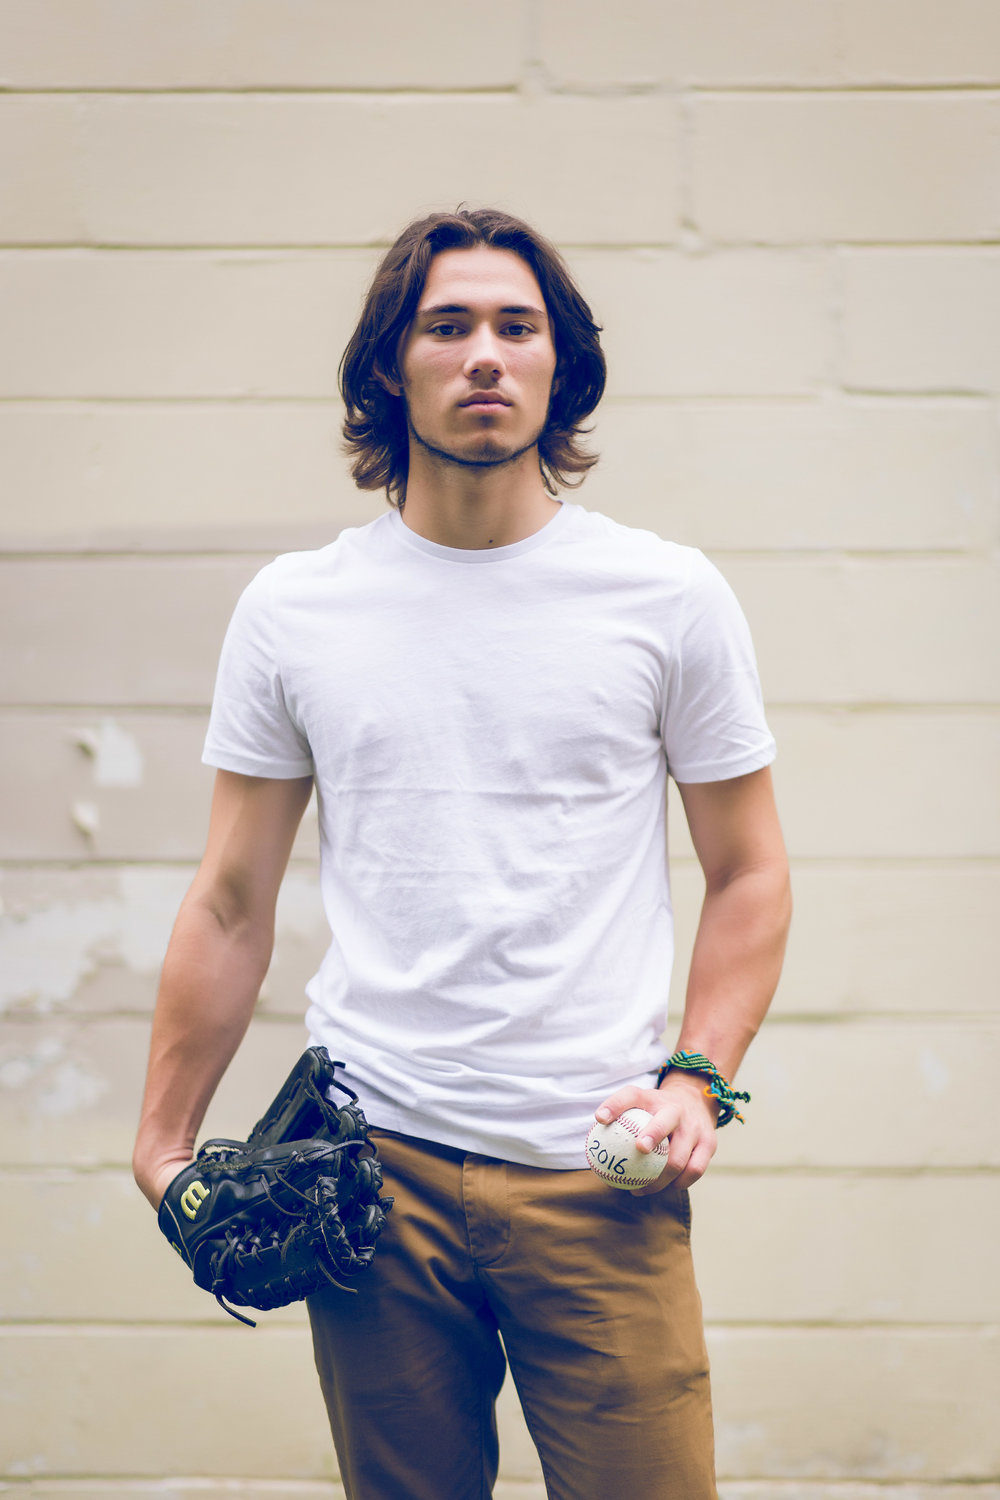 senior photo of a baseball player